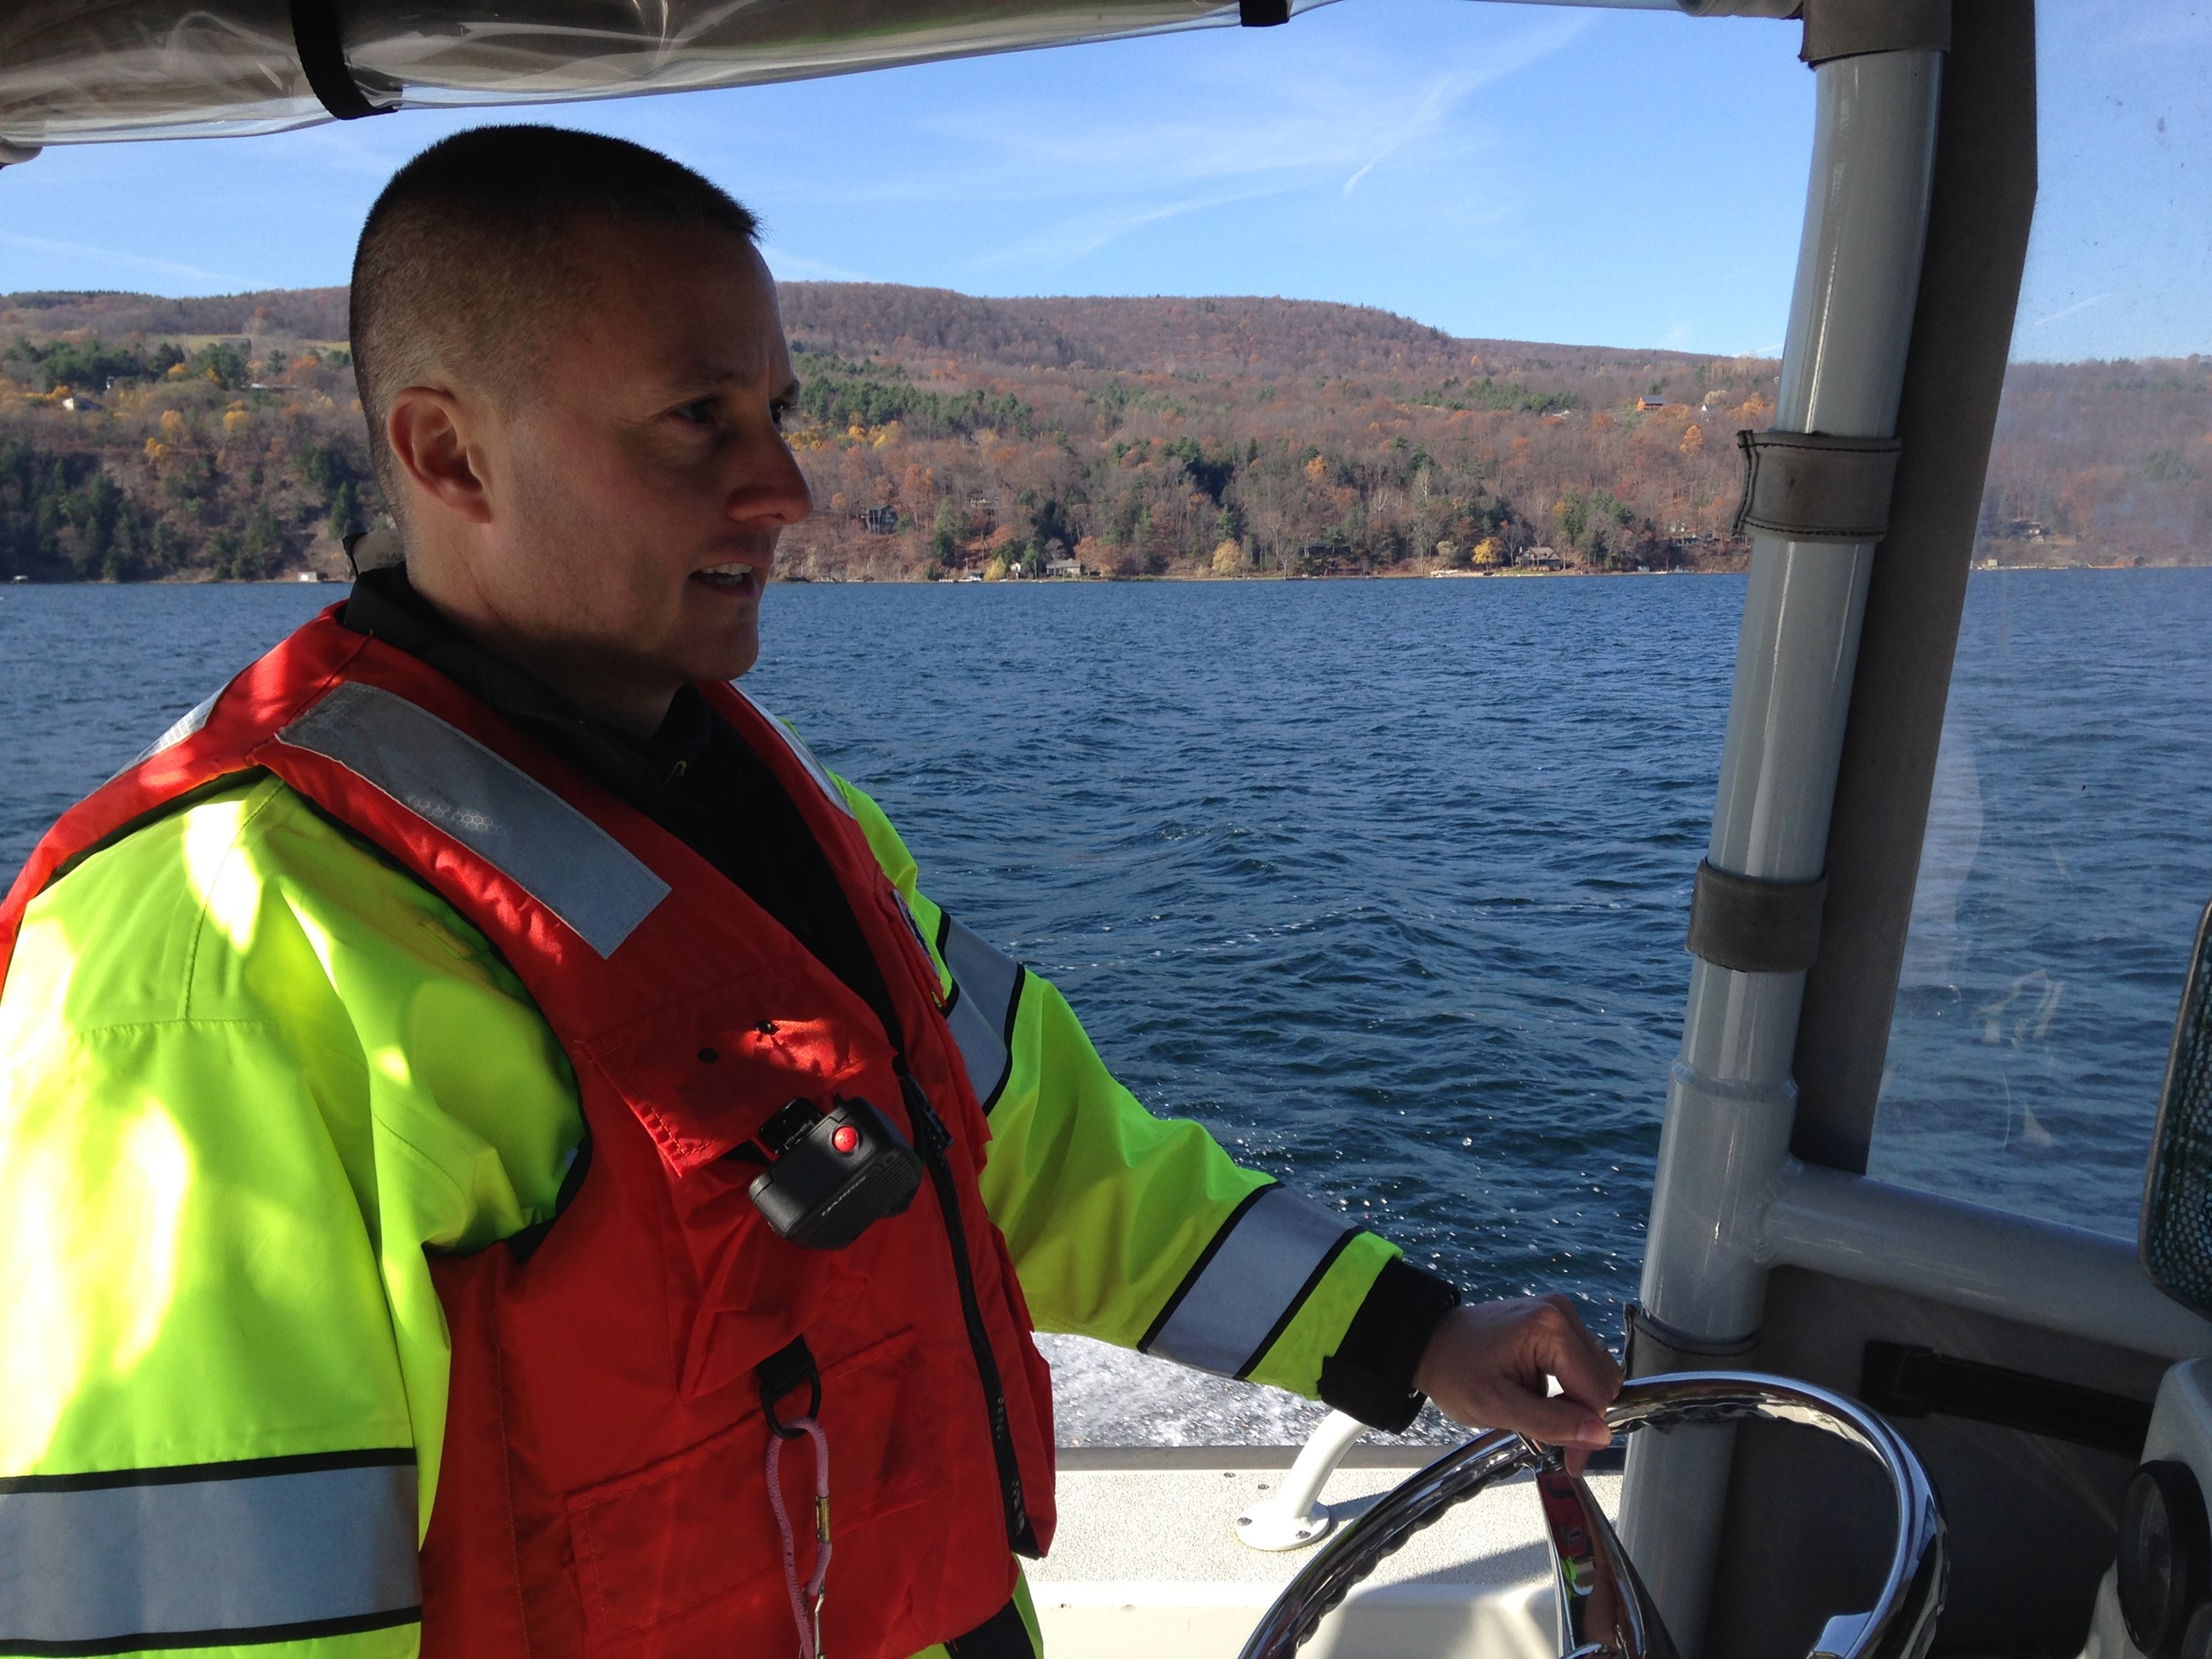 Sgt Cirencione at the helm